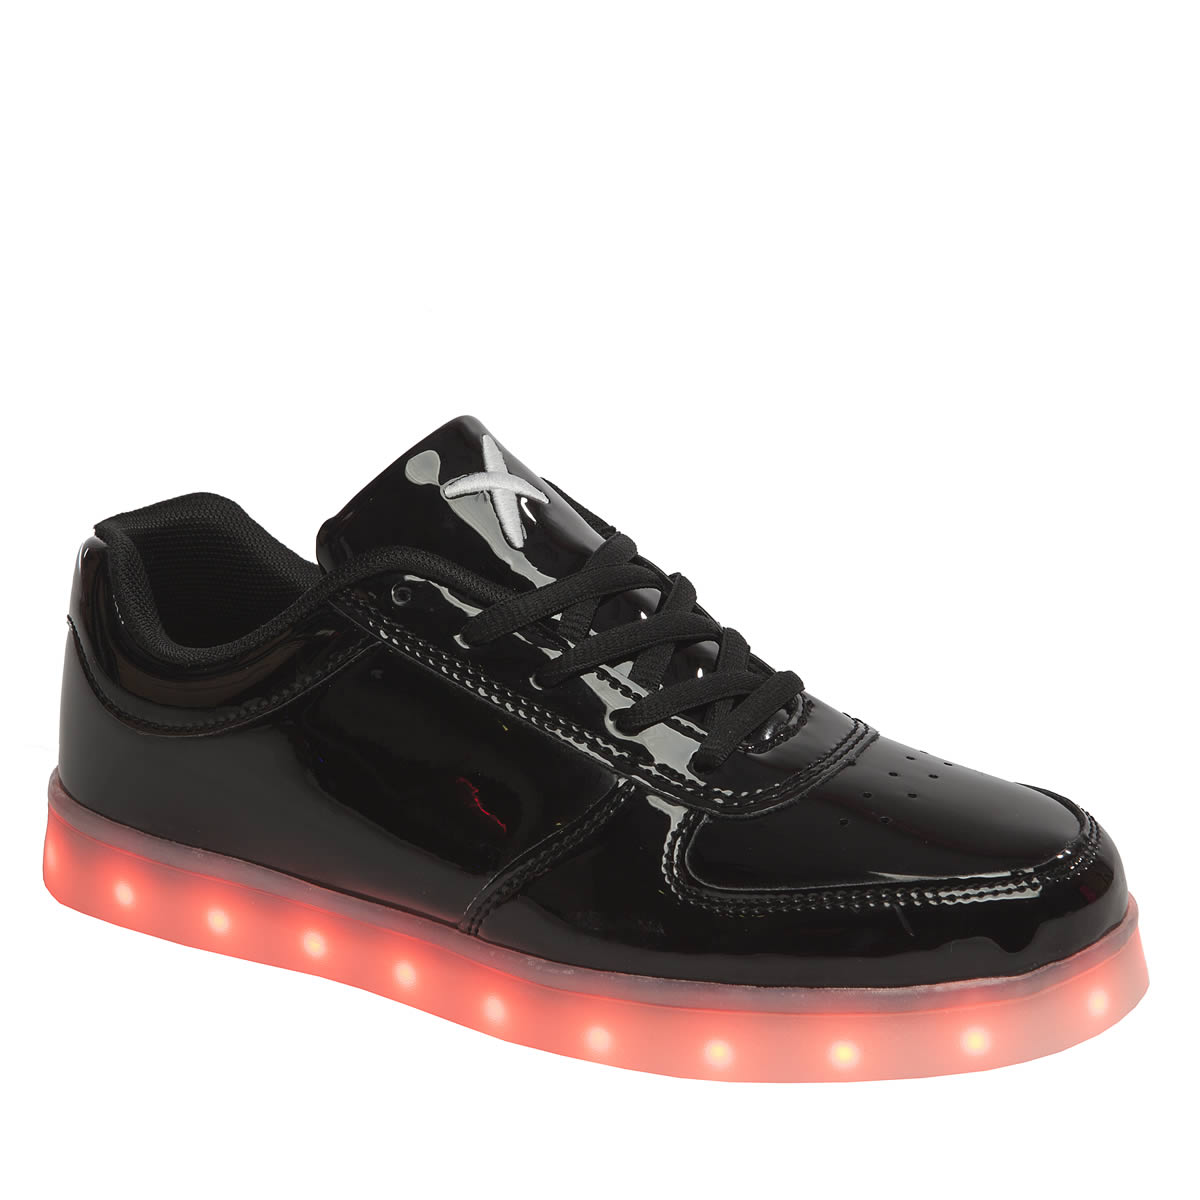 wize & ope Wize & Ope Black Pop Led Trainers